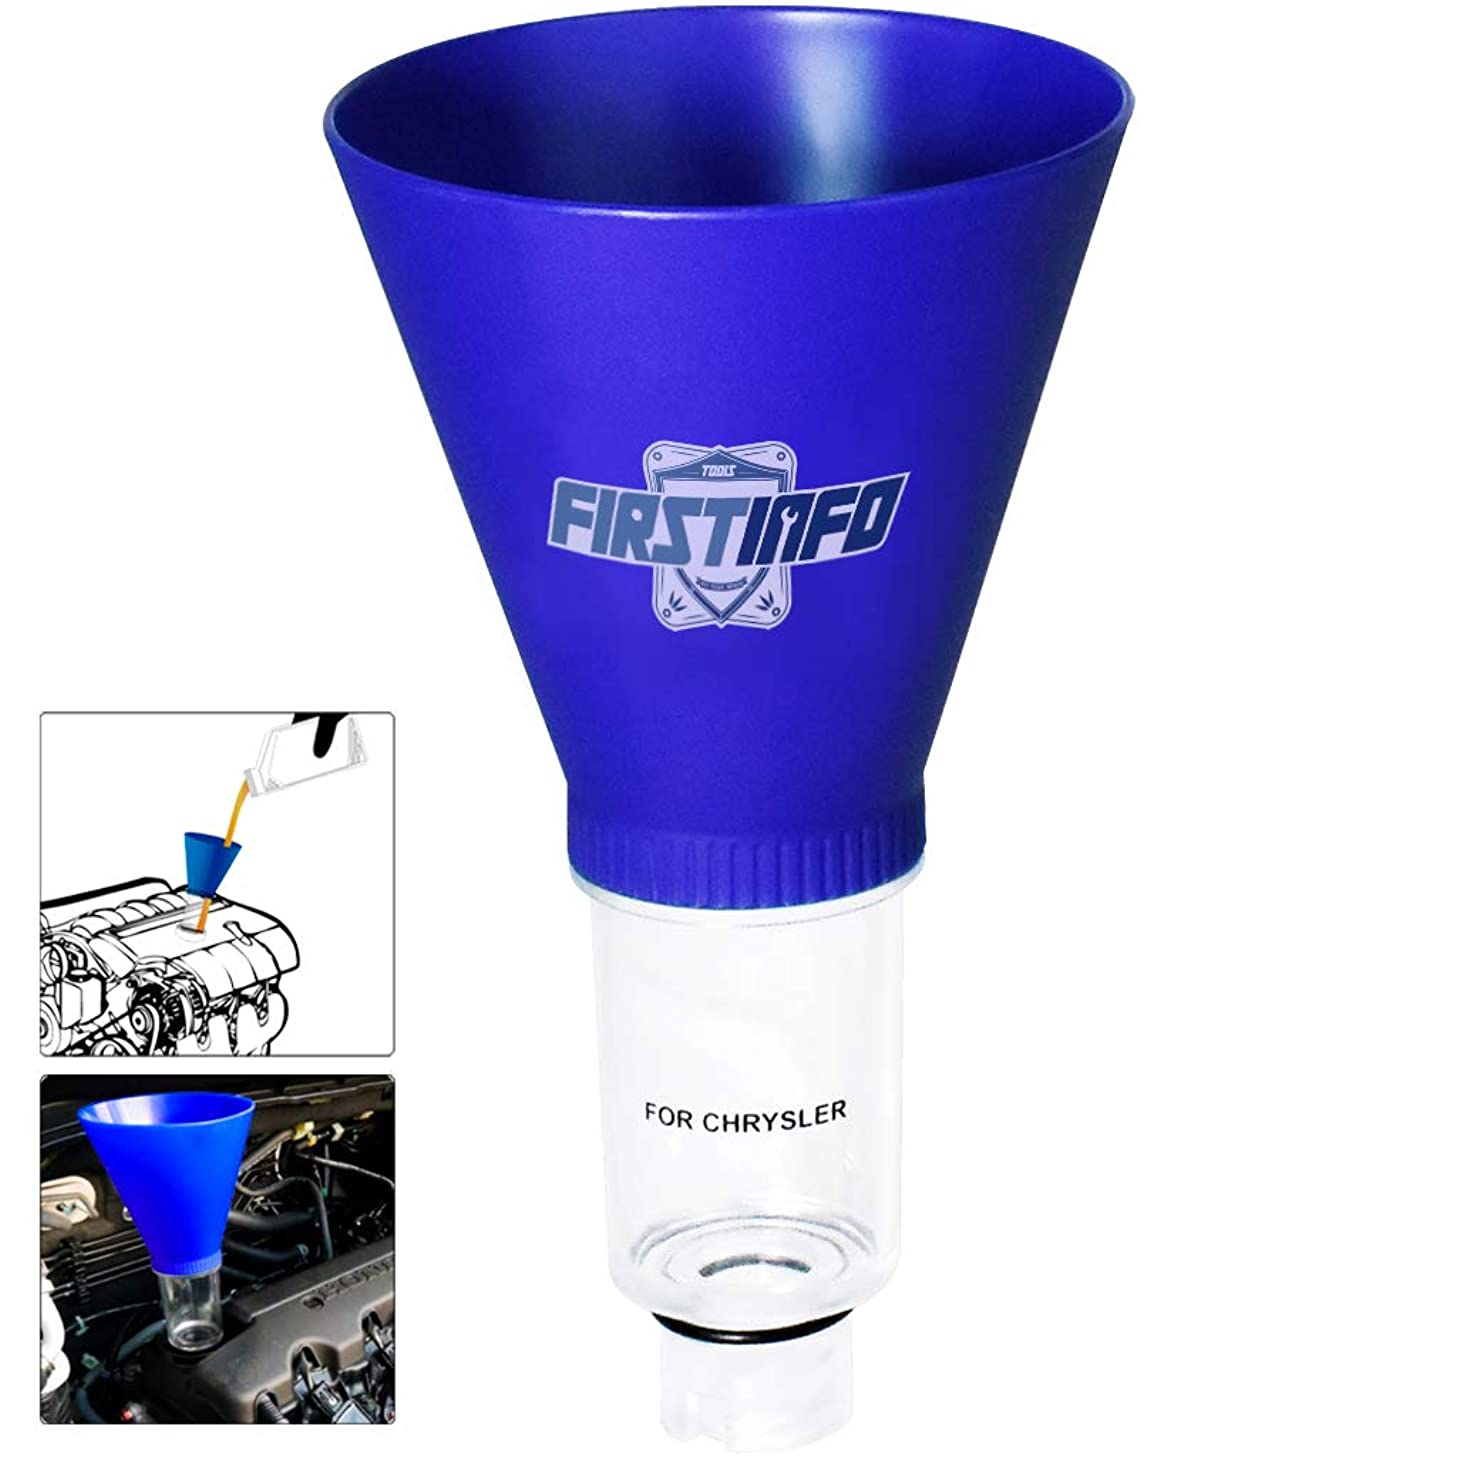 FIRSTINFO Engine Oil Funnel for Chrysler, Dodge, and Jeep Vehicles